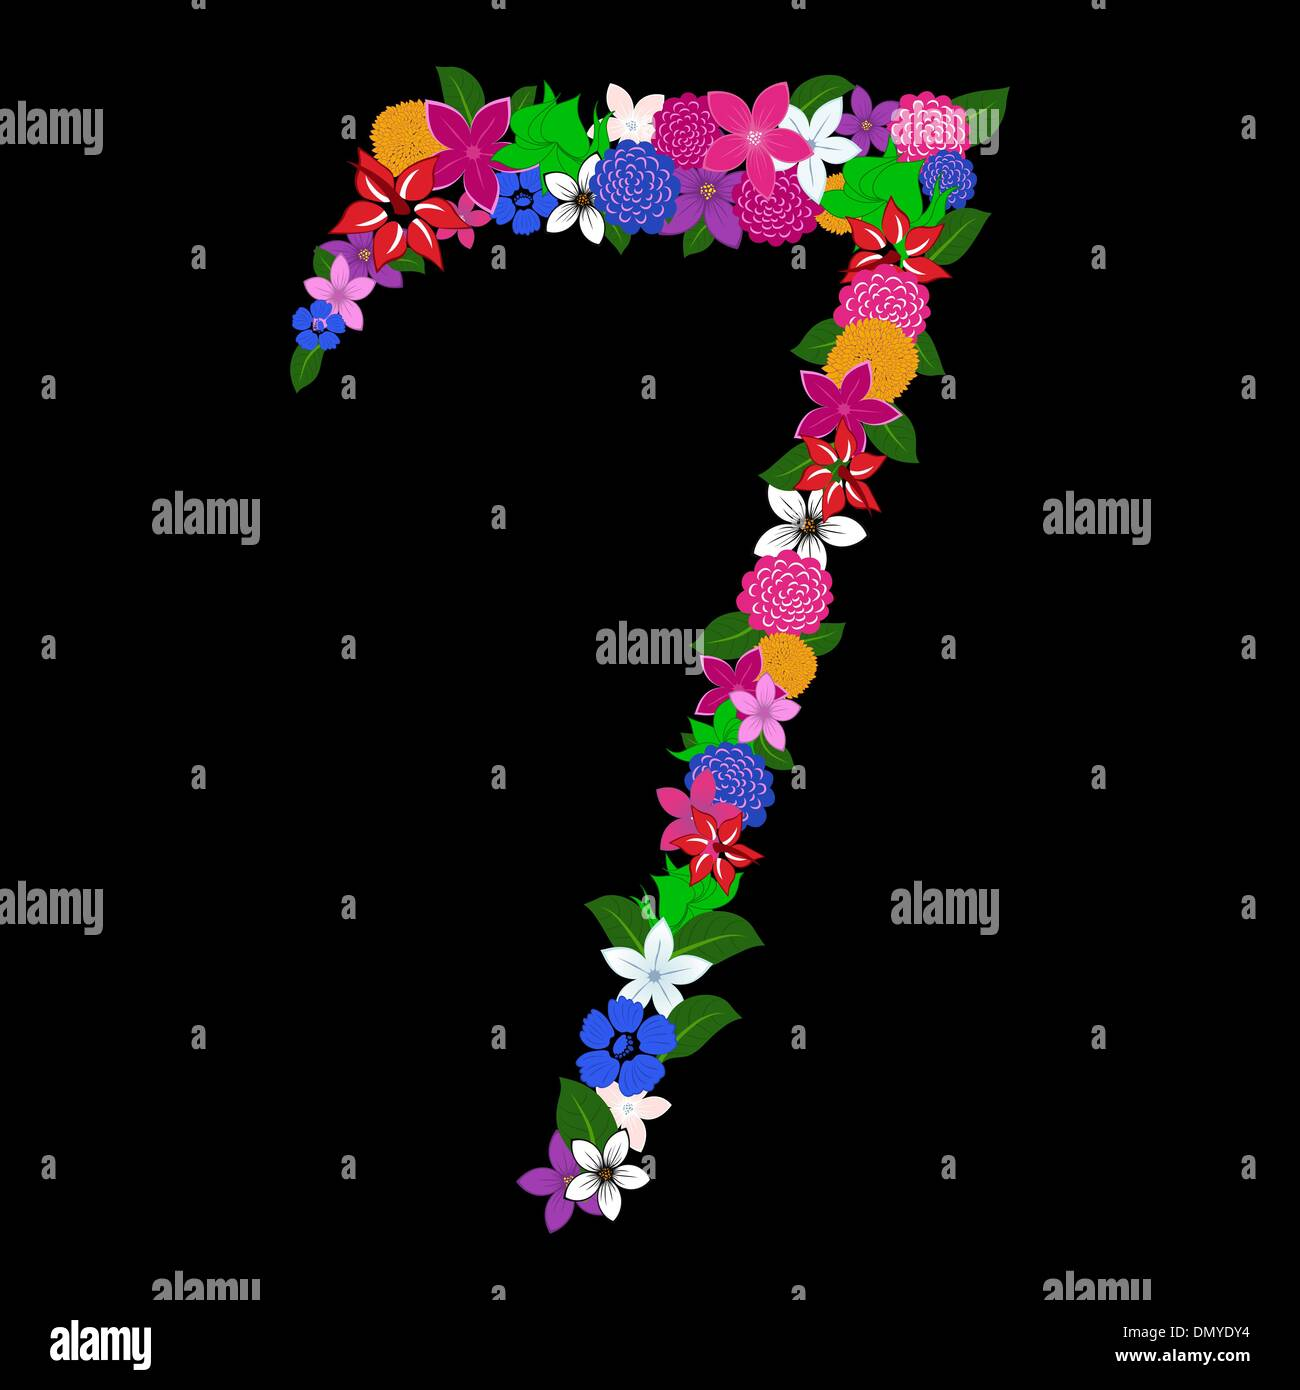 floral numeral - Stock Image